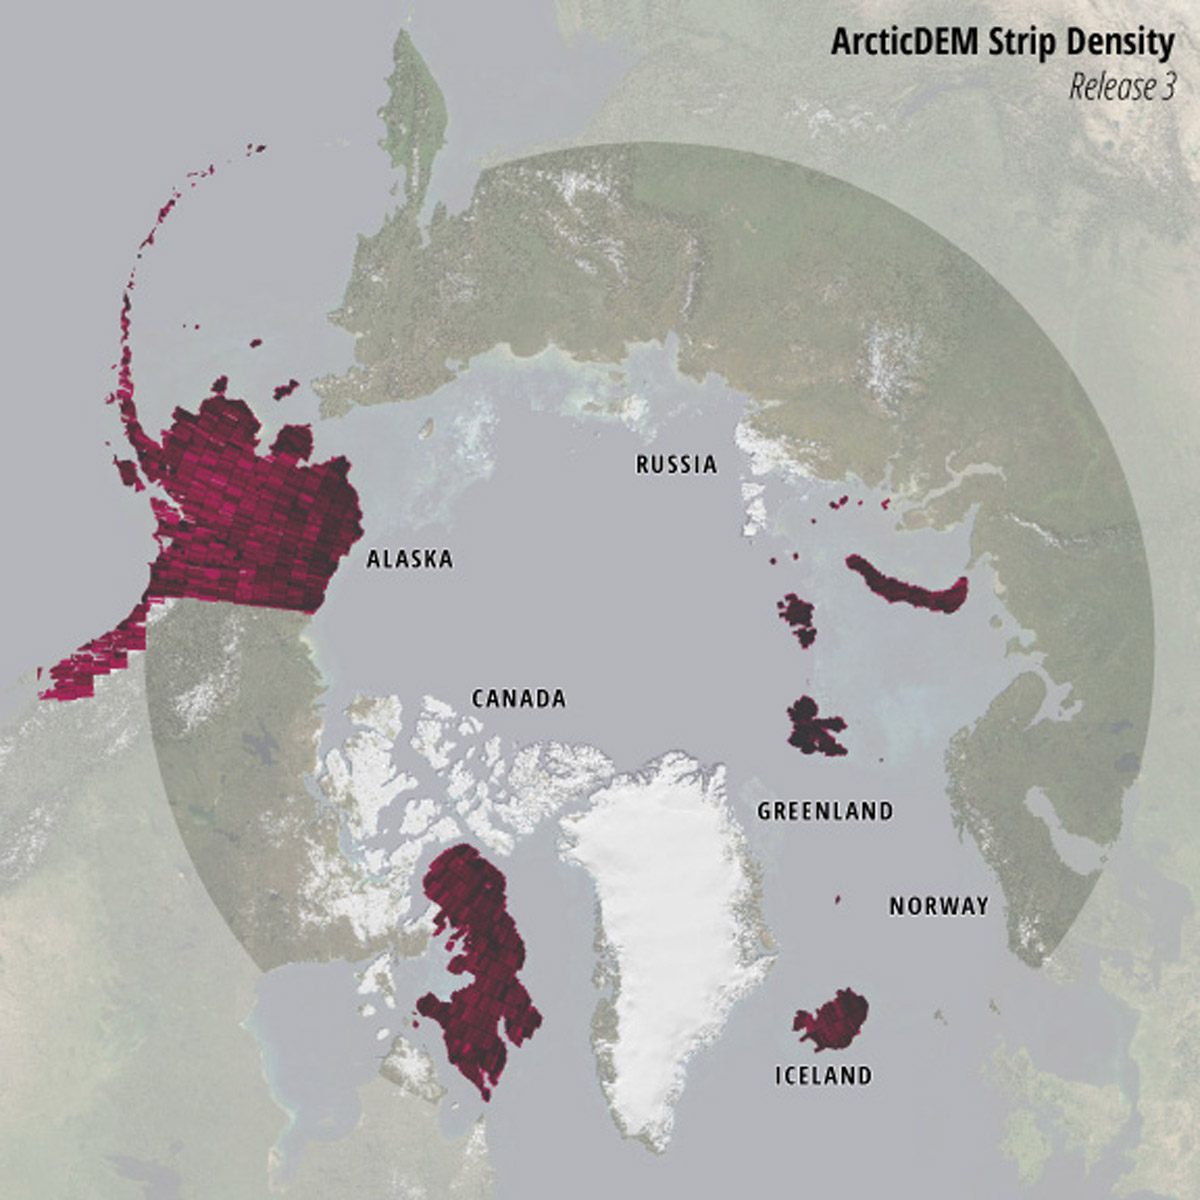 ArcticDEM_Strip_Density